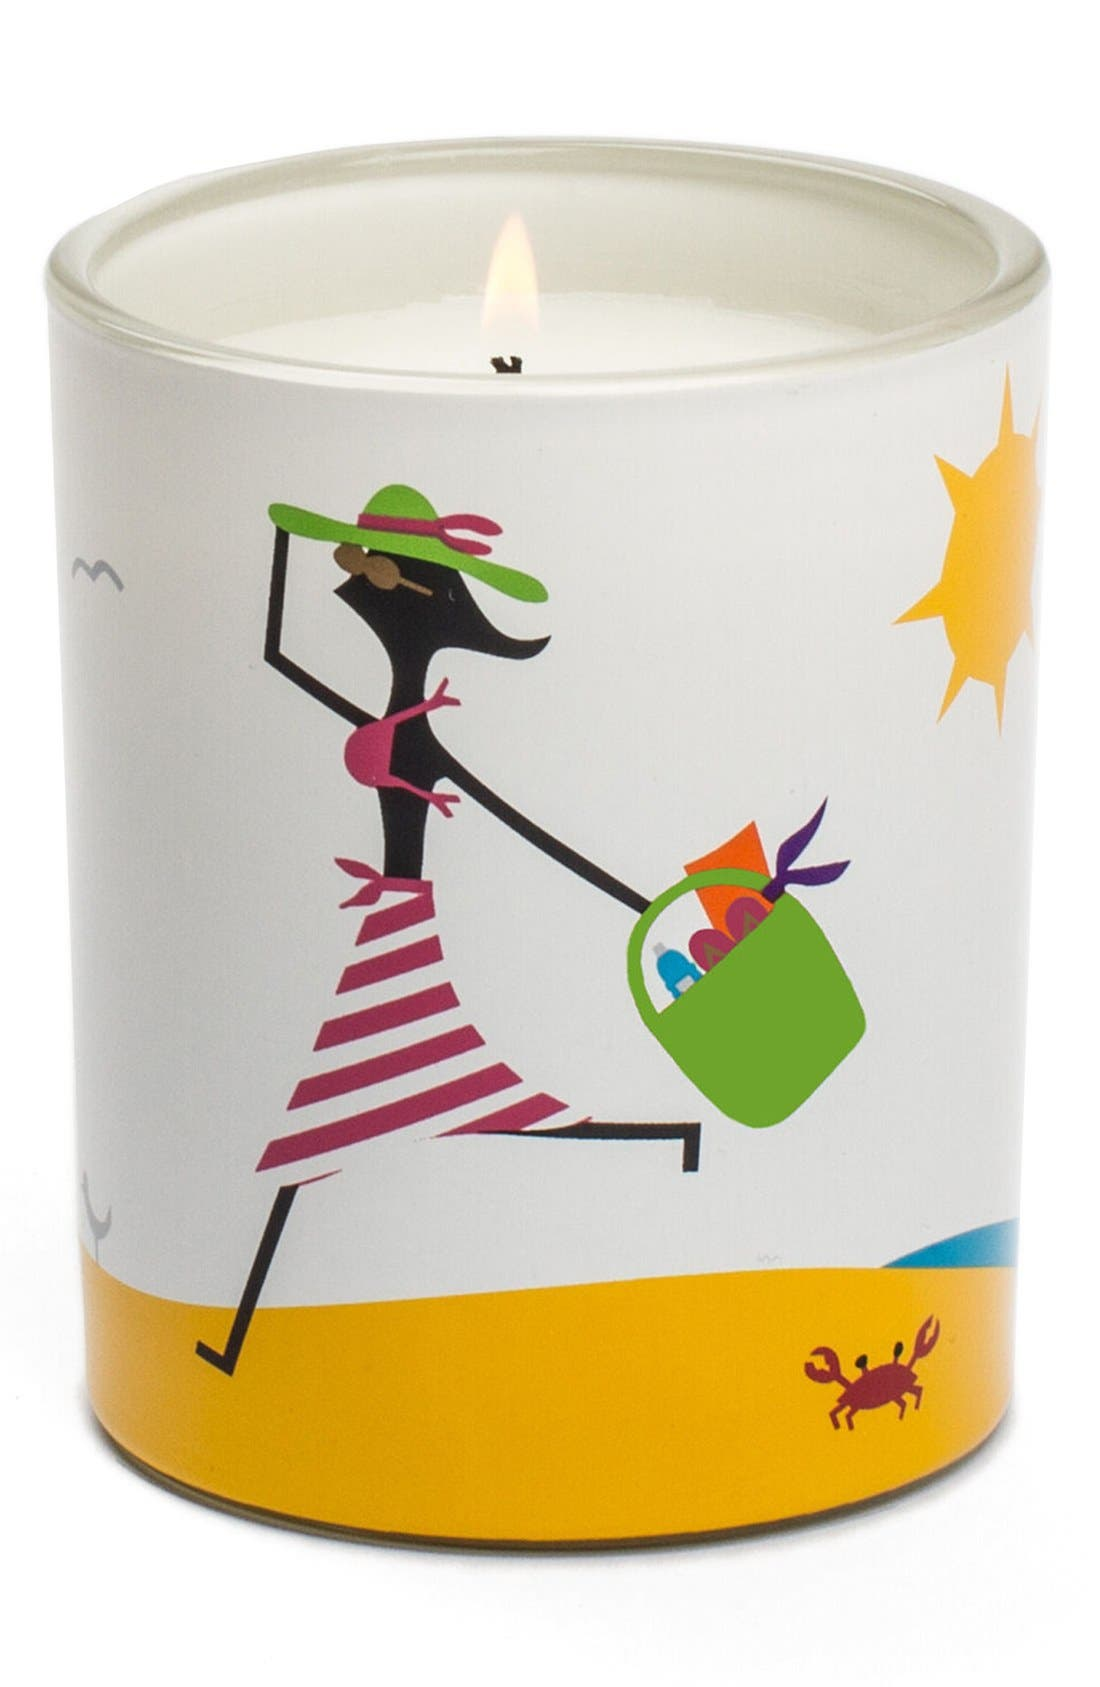 R. Nichols 'Surf' Scented Candle